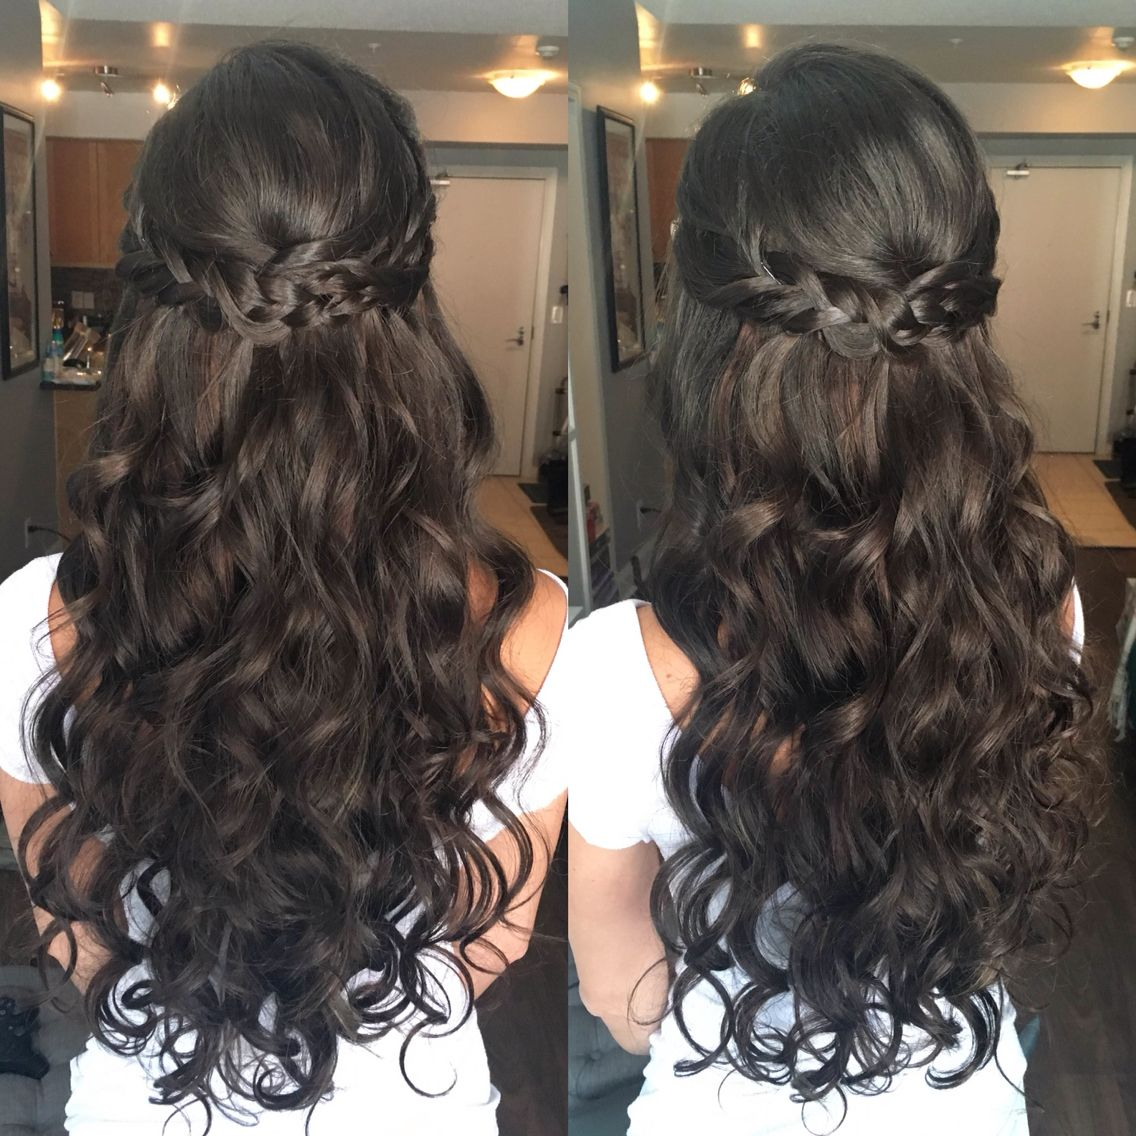 Pin By Jess Hoffman On Wedding Quince Hairstyles Wedding Hair And Makeup Long Hair Styles